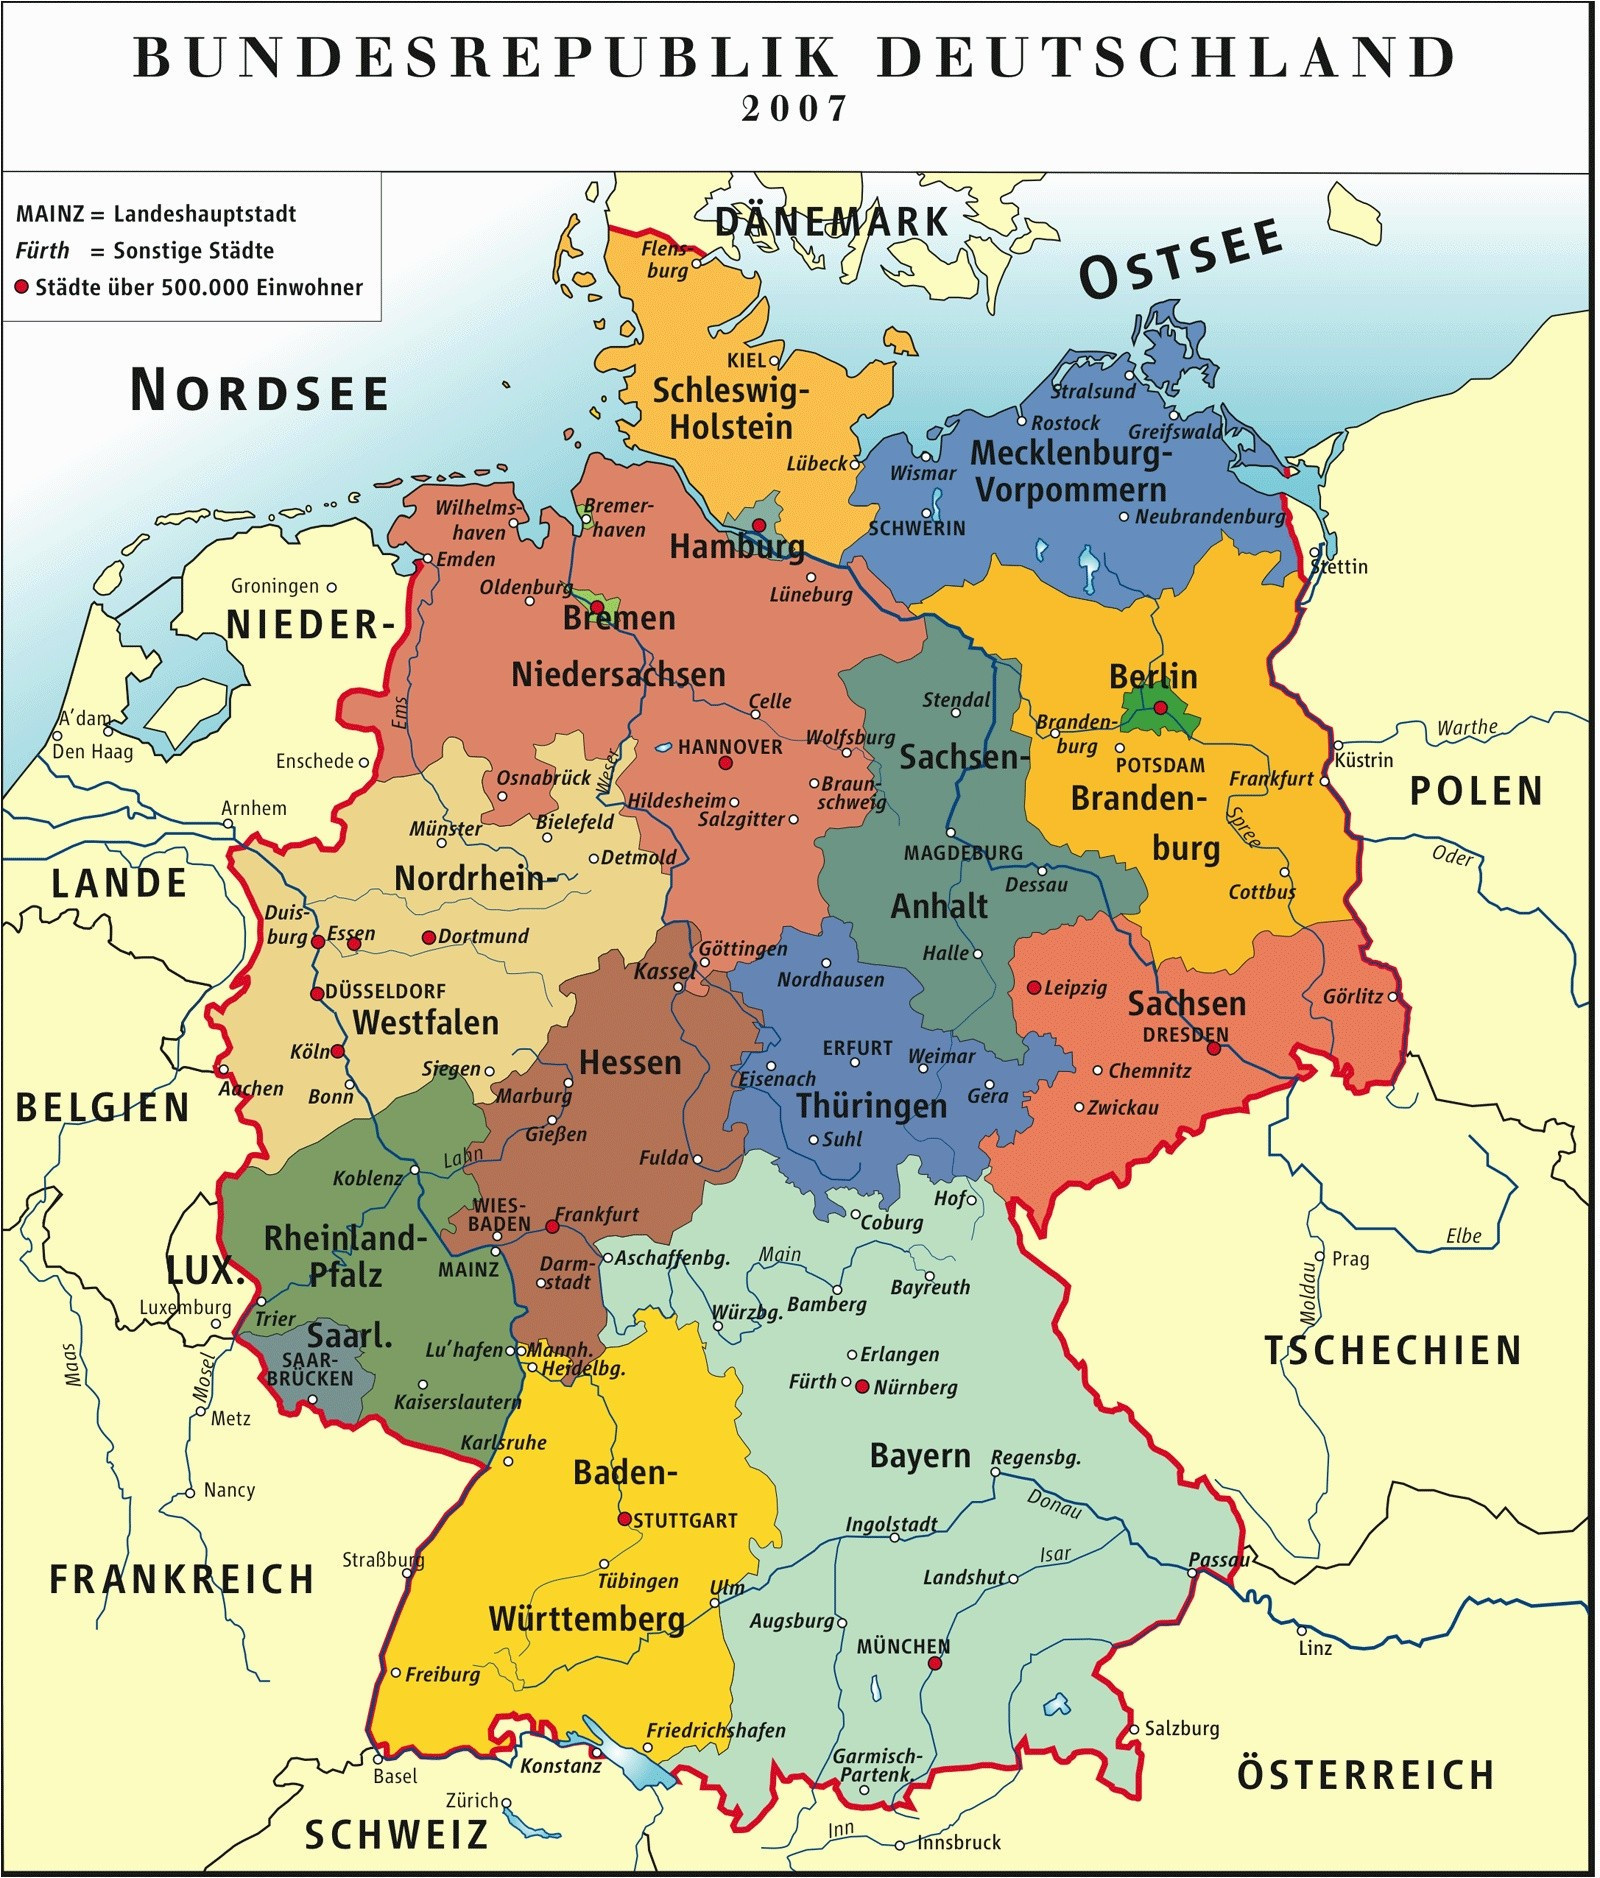 United States Landforms Map Refrence Printable World Maps for Students 2018 Download Map Od Germany Map